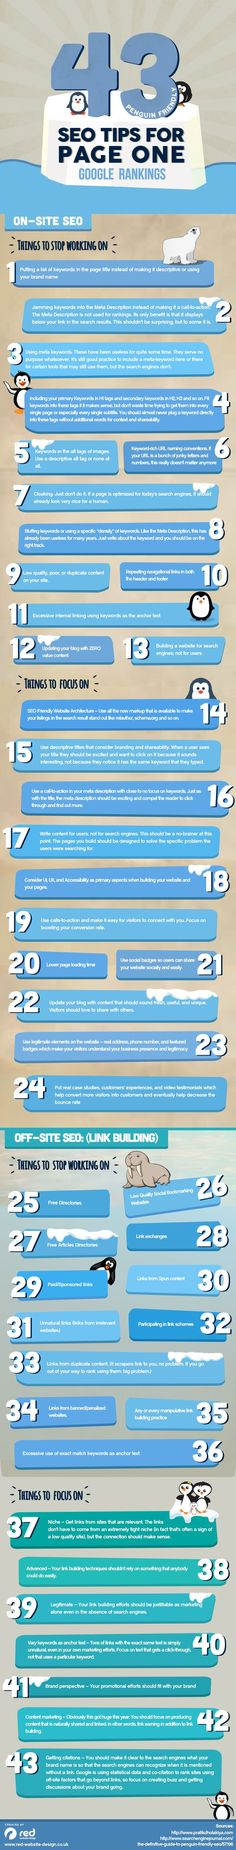 43 Penguin Friendly SEO Tips for Page One Google Rankings